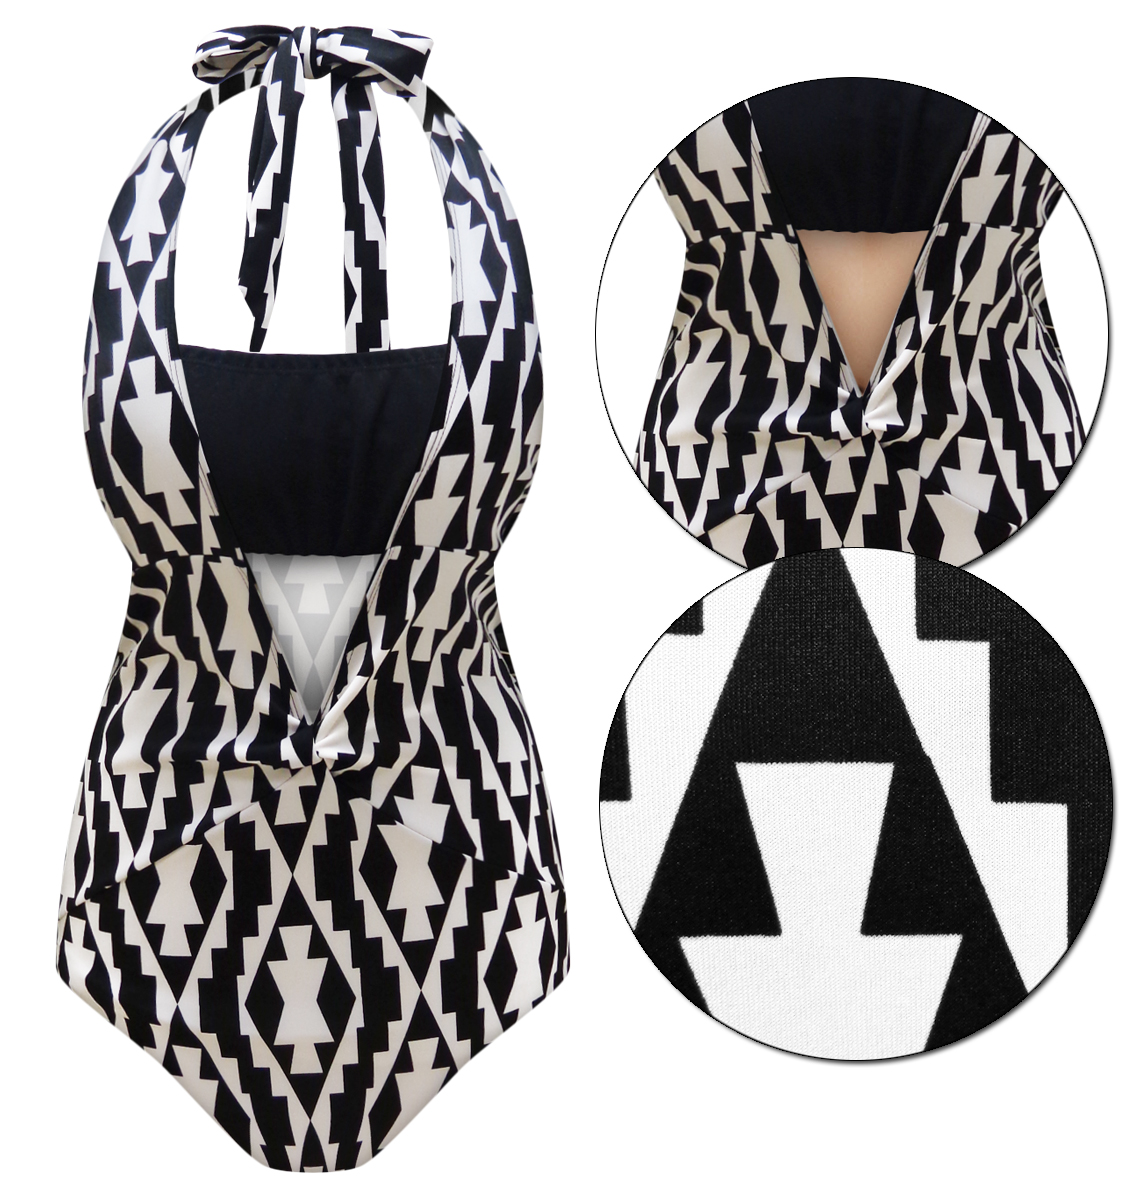 b3a2424f28 Black   White Geometric Print One-Piece Plus Size   Supersize Swimsuit 0x  1x 2x 3x 4x 5x 6x 7x 8x